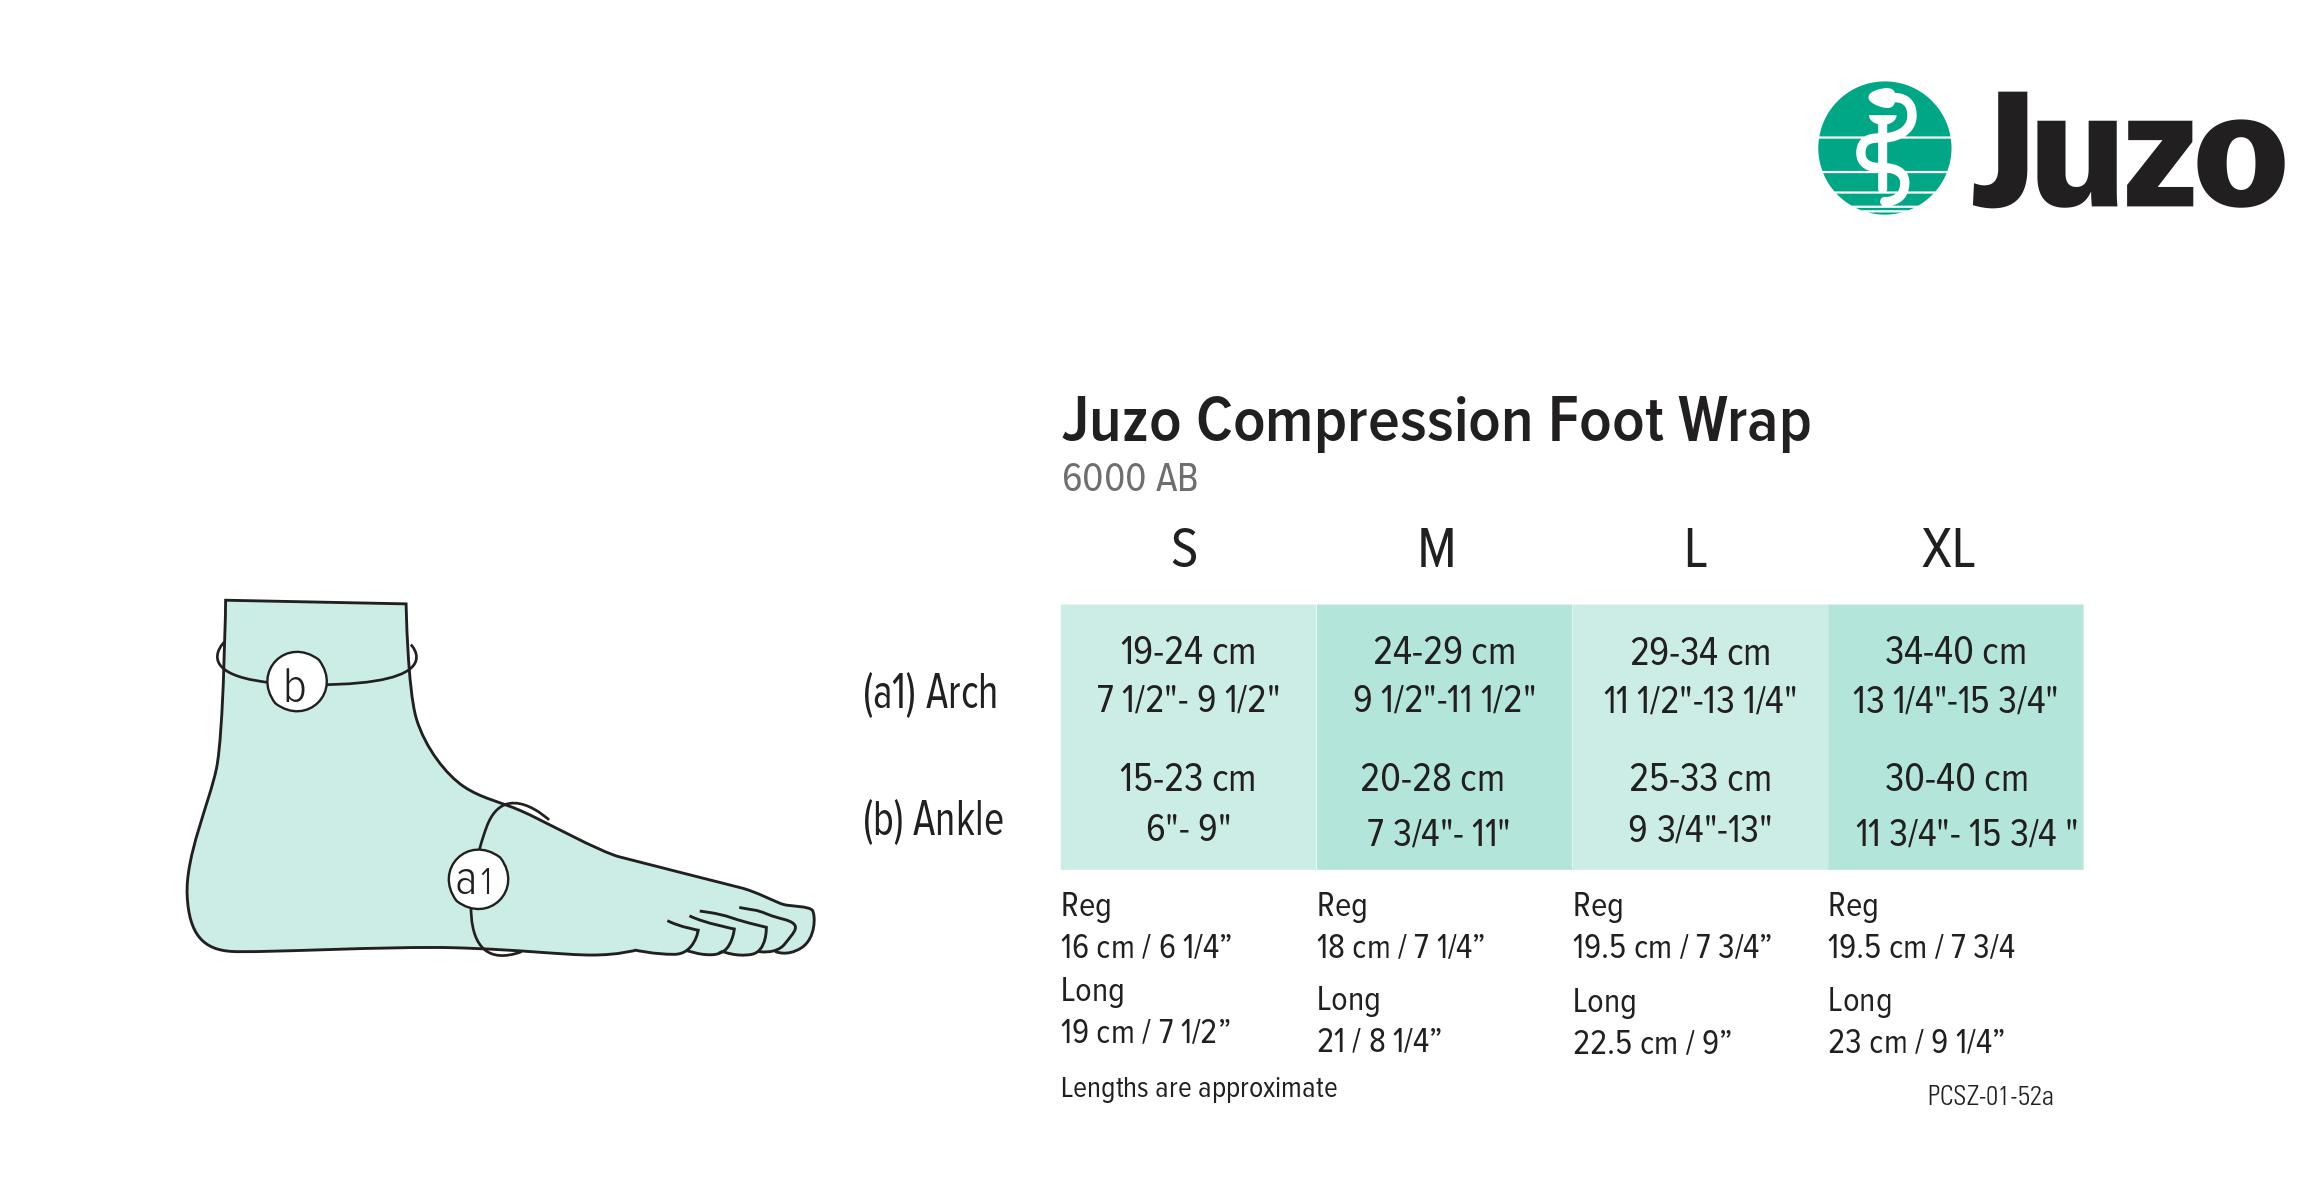 juzo-foot-wrap-sizing-chart.jpg